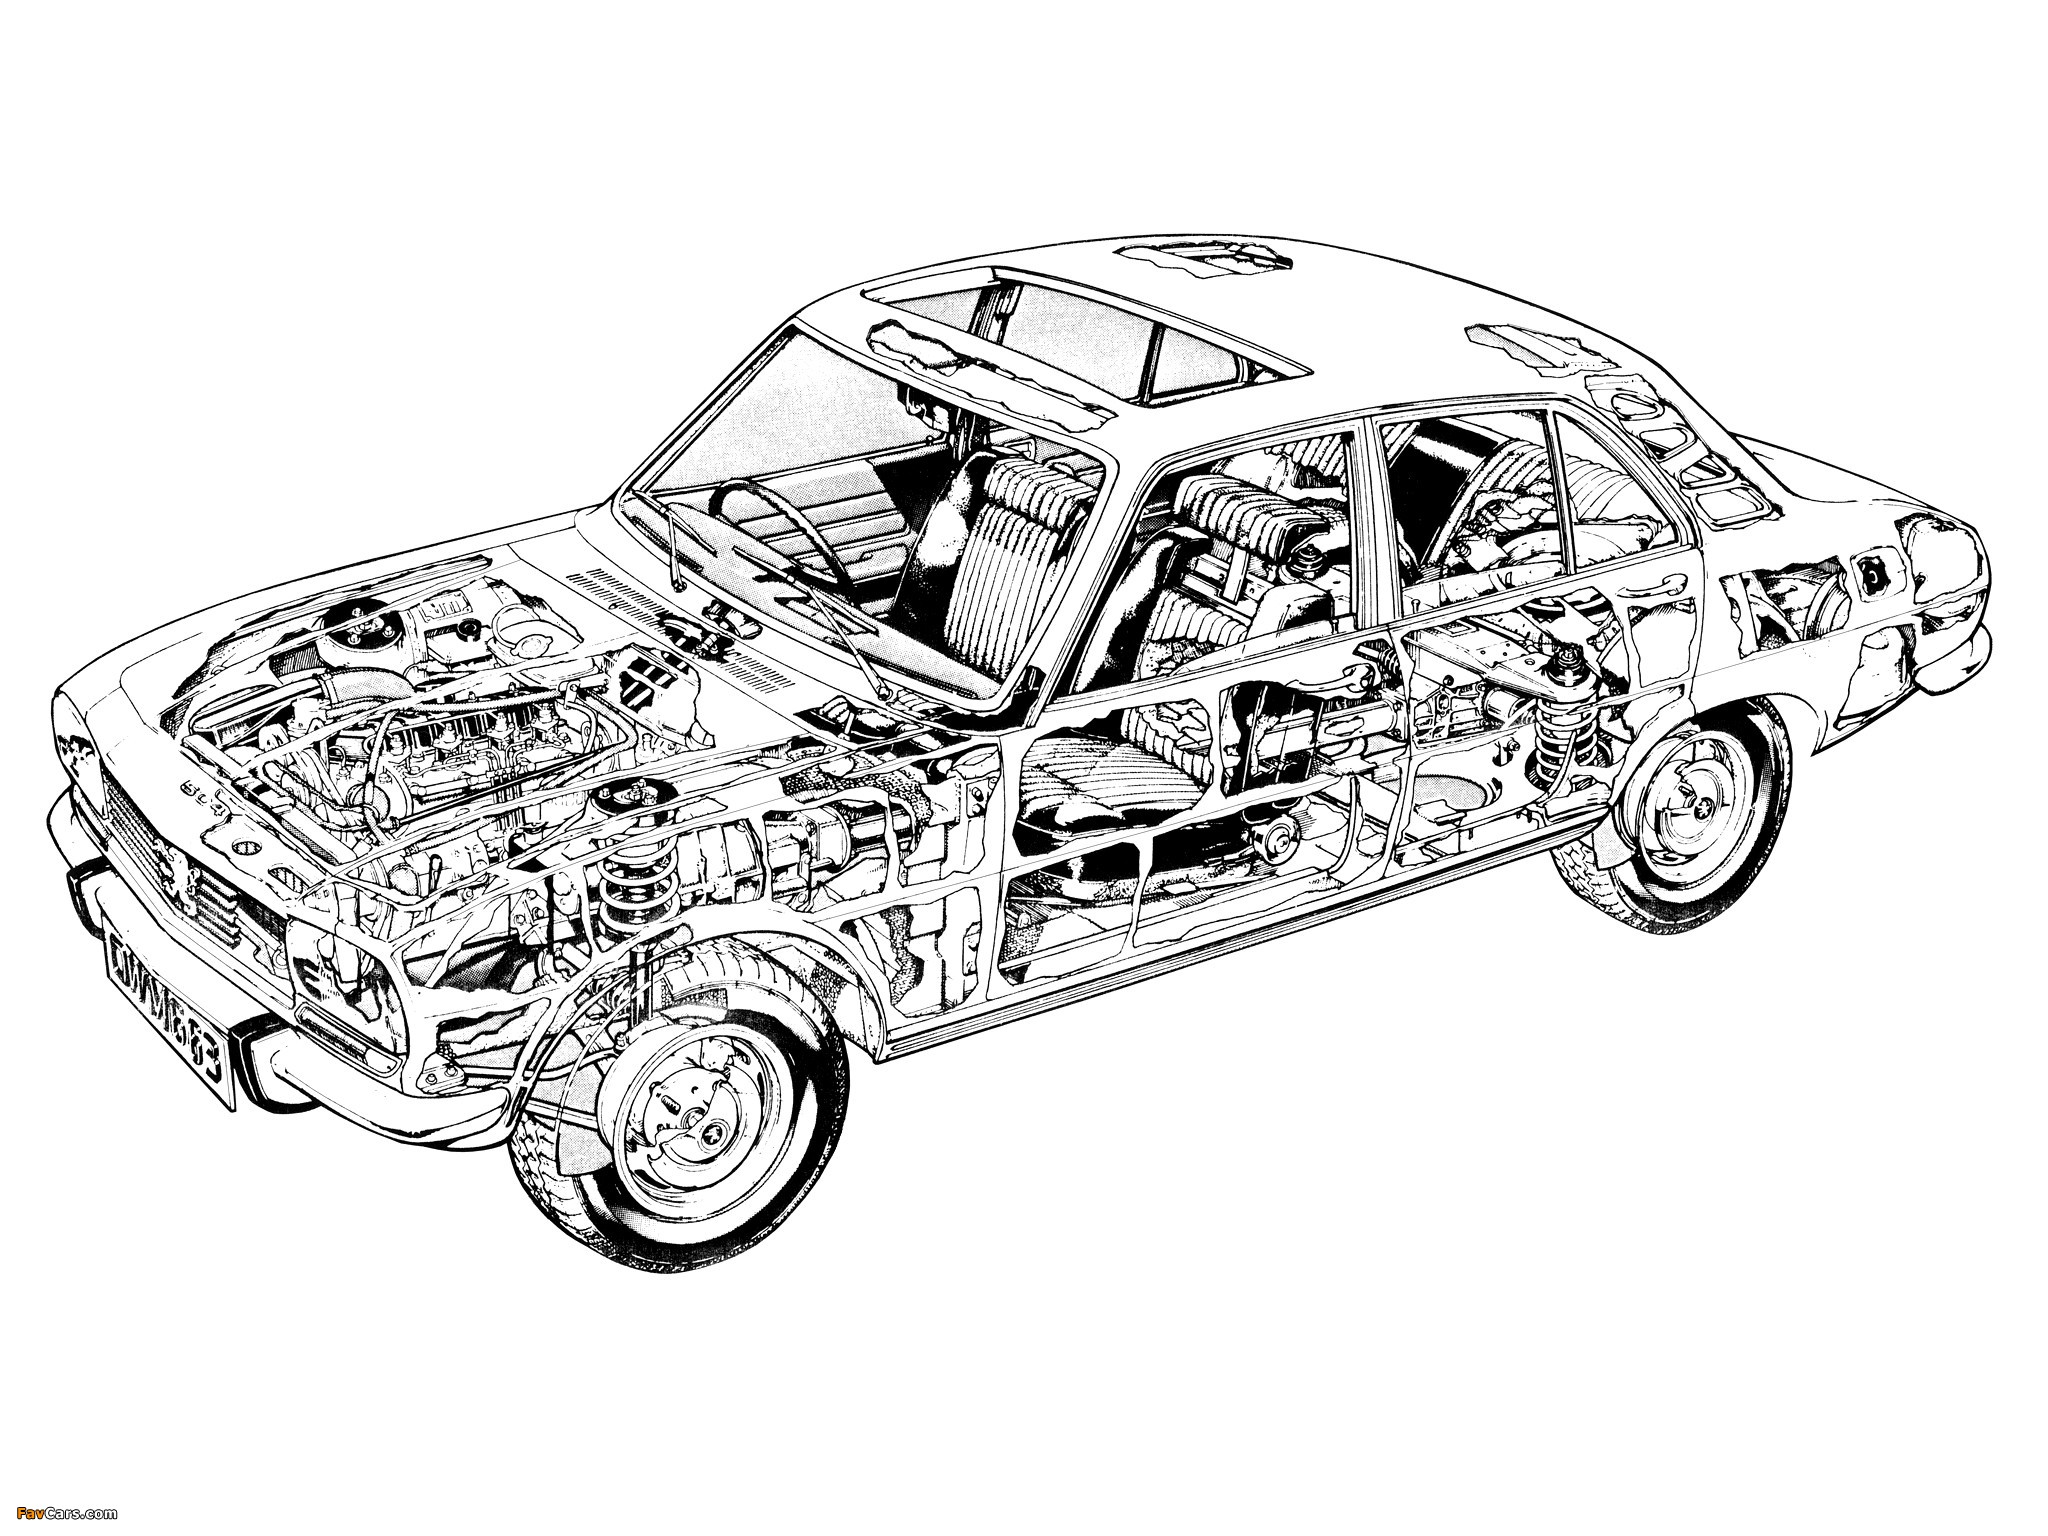 Peugeot 504 Technical Specifications And Fuel Economy